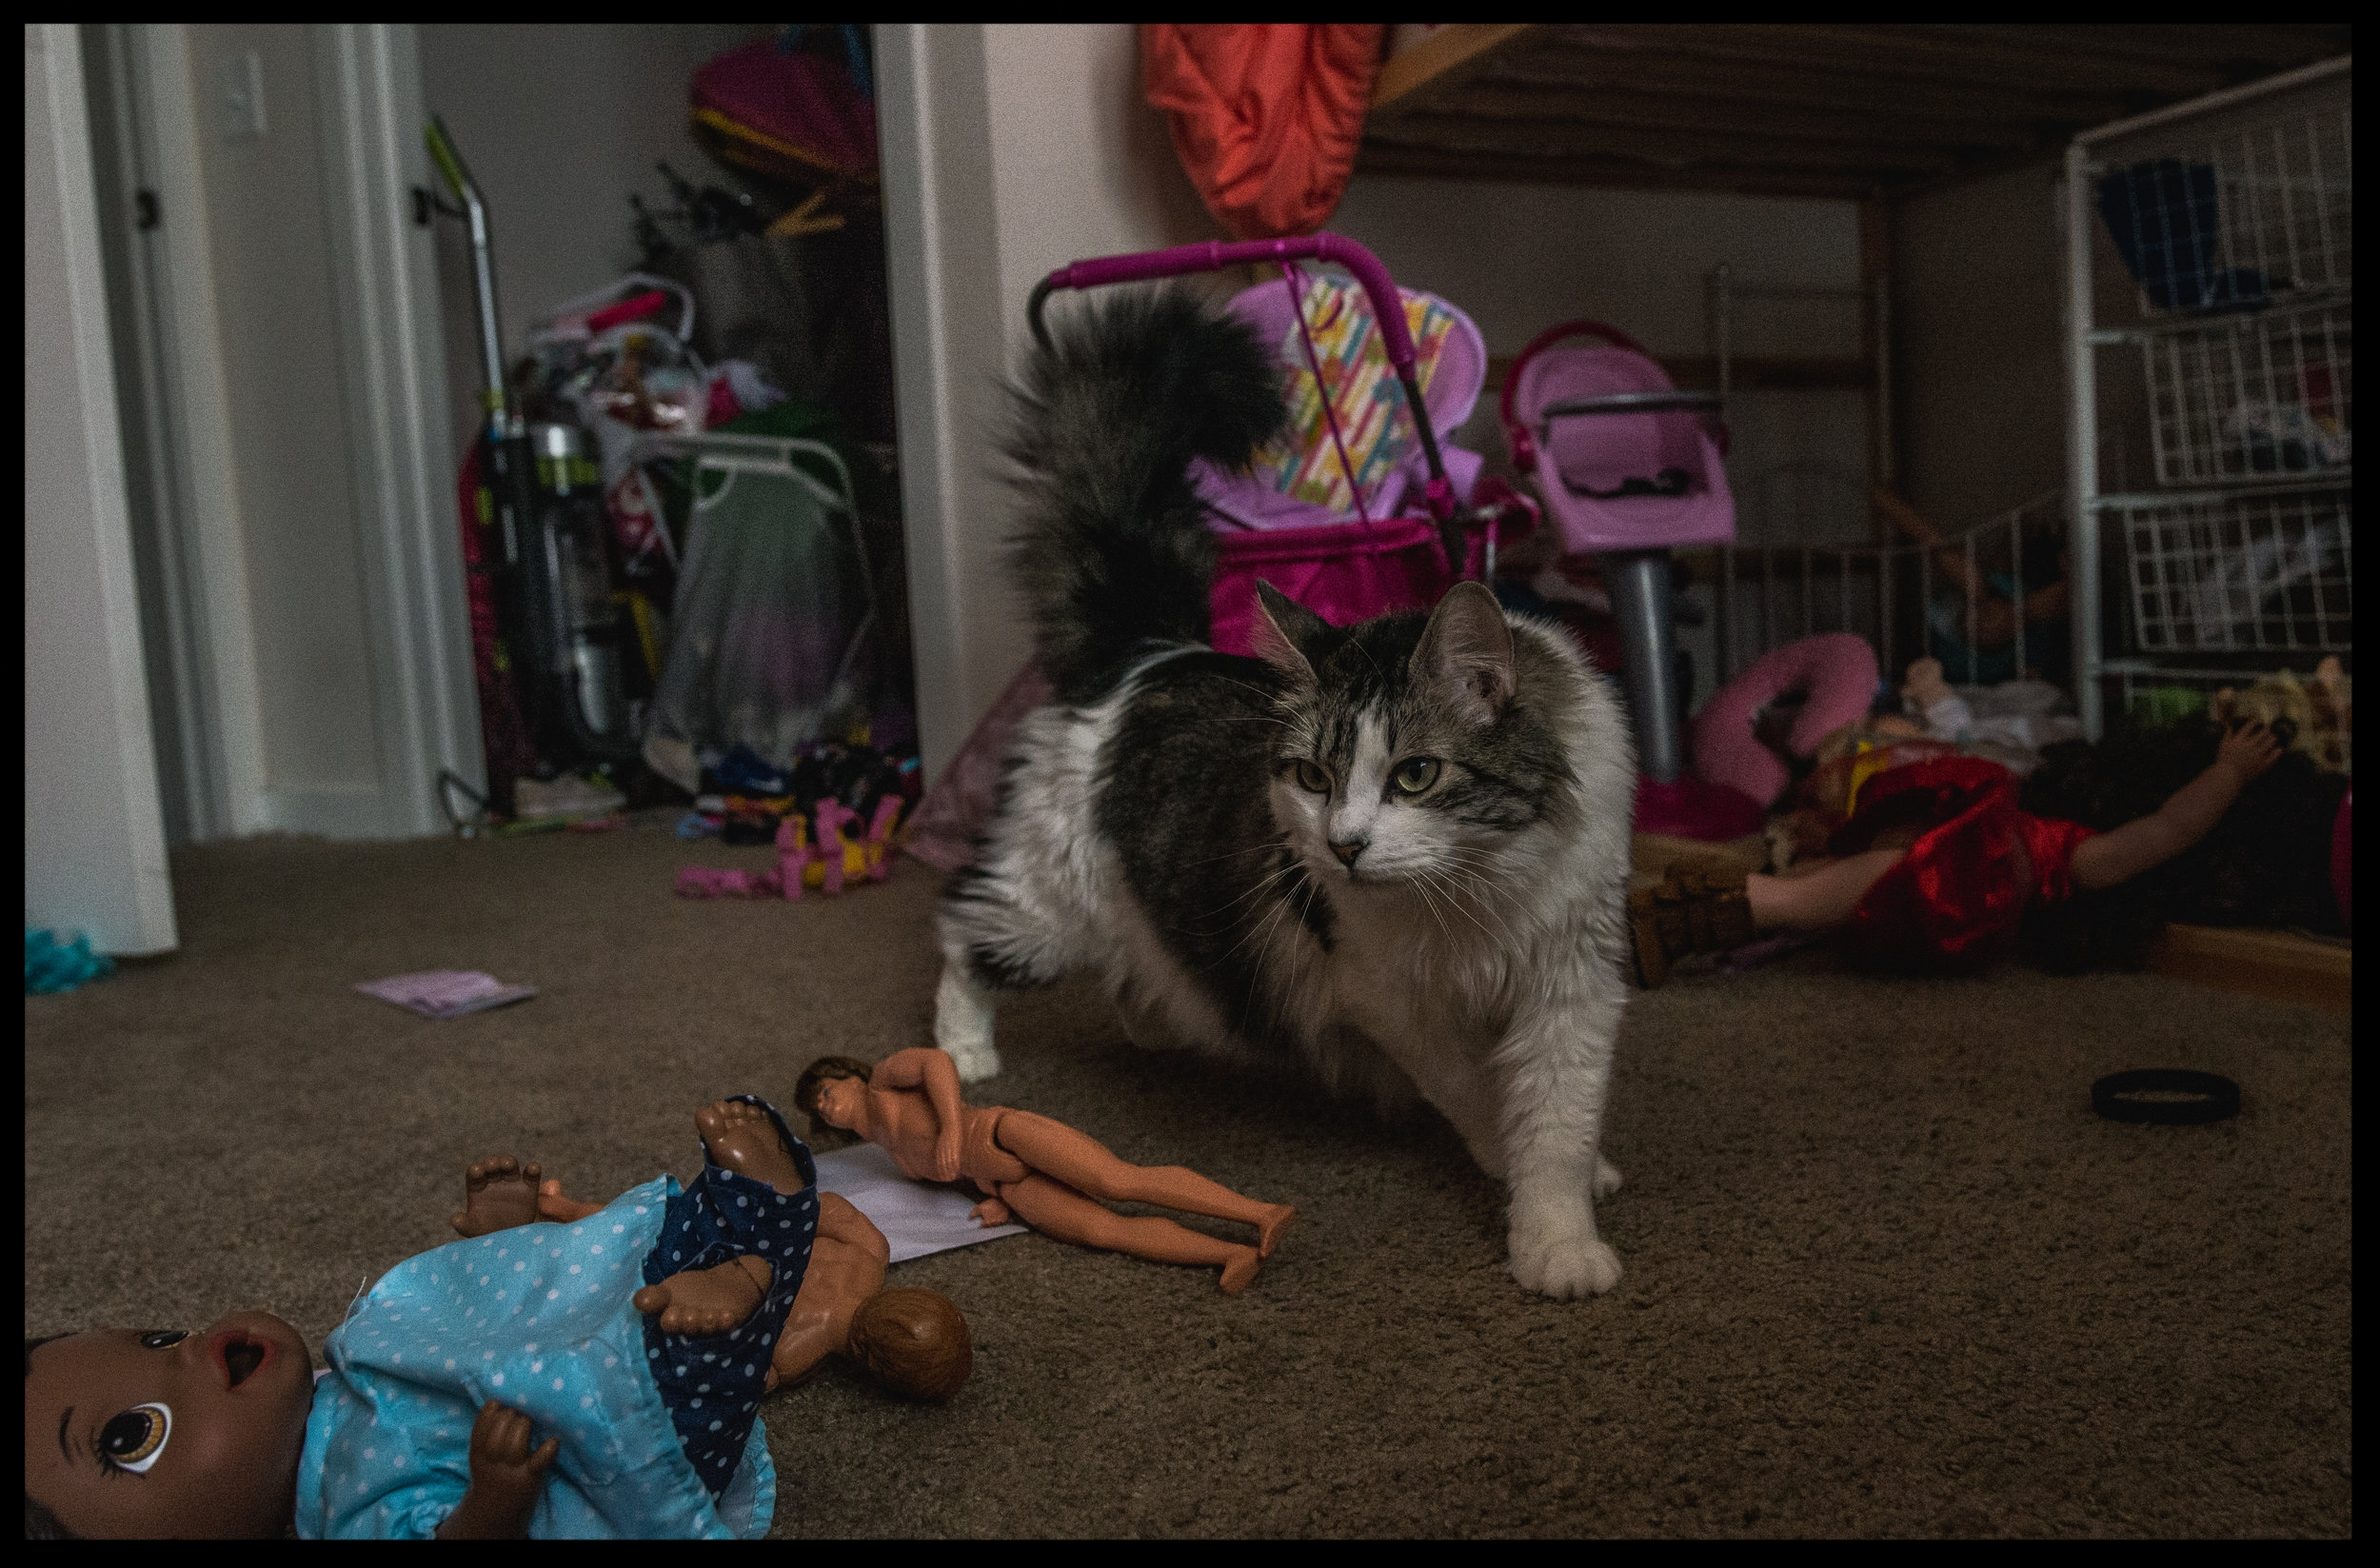 Grey and white fluffy cat standing in a silly fashion, color, Lakewood, Colorado